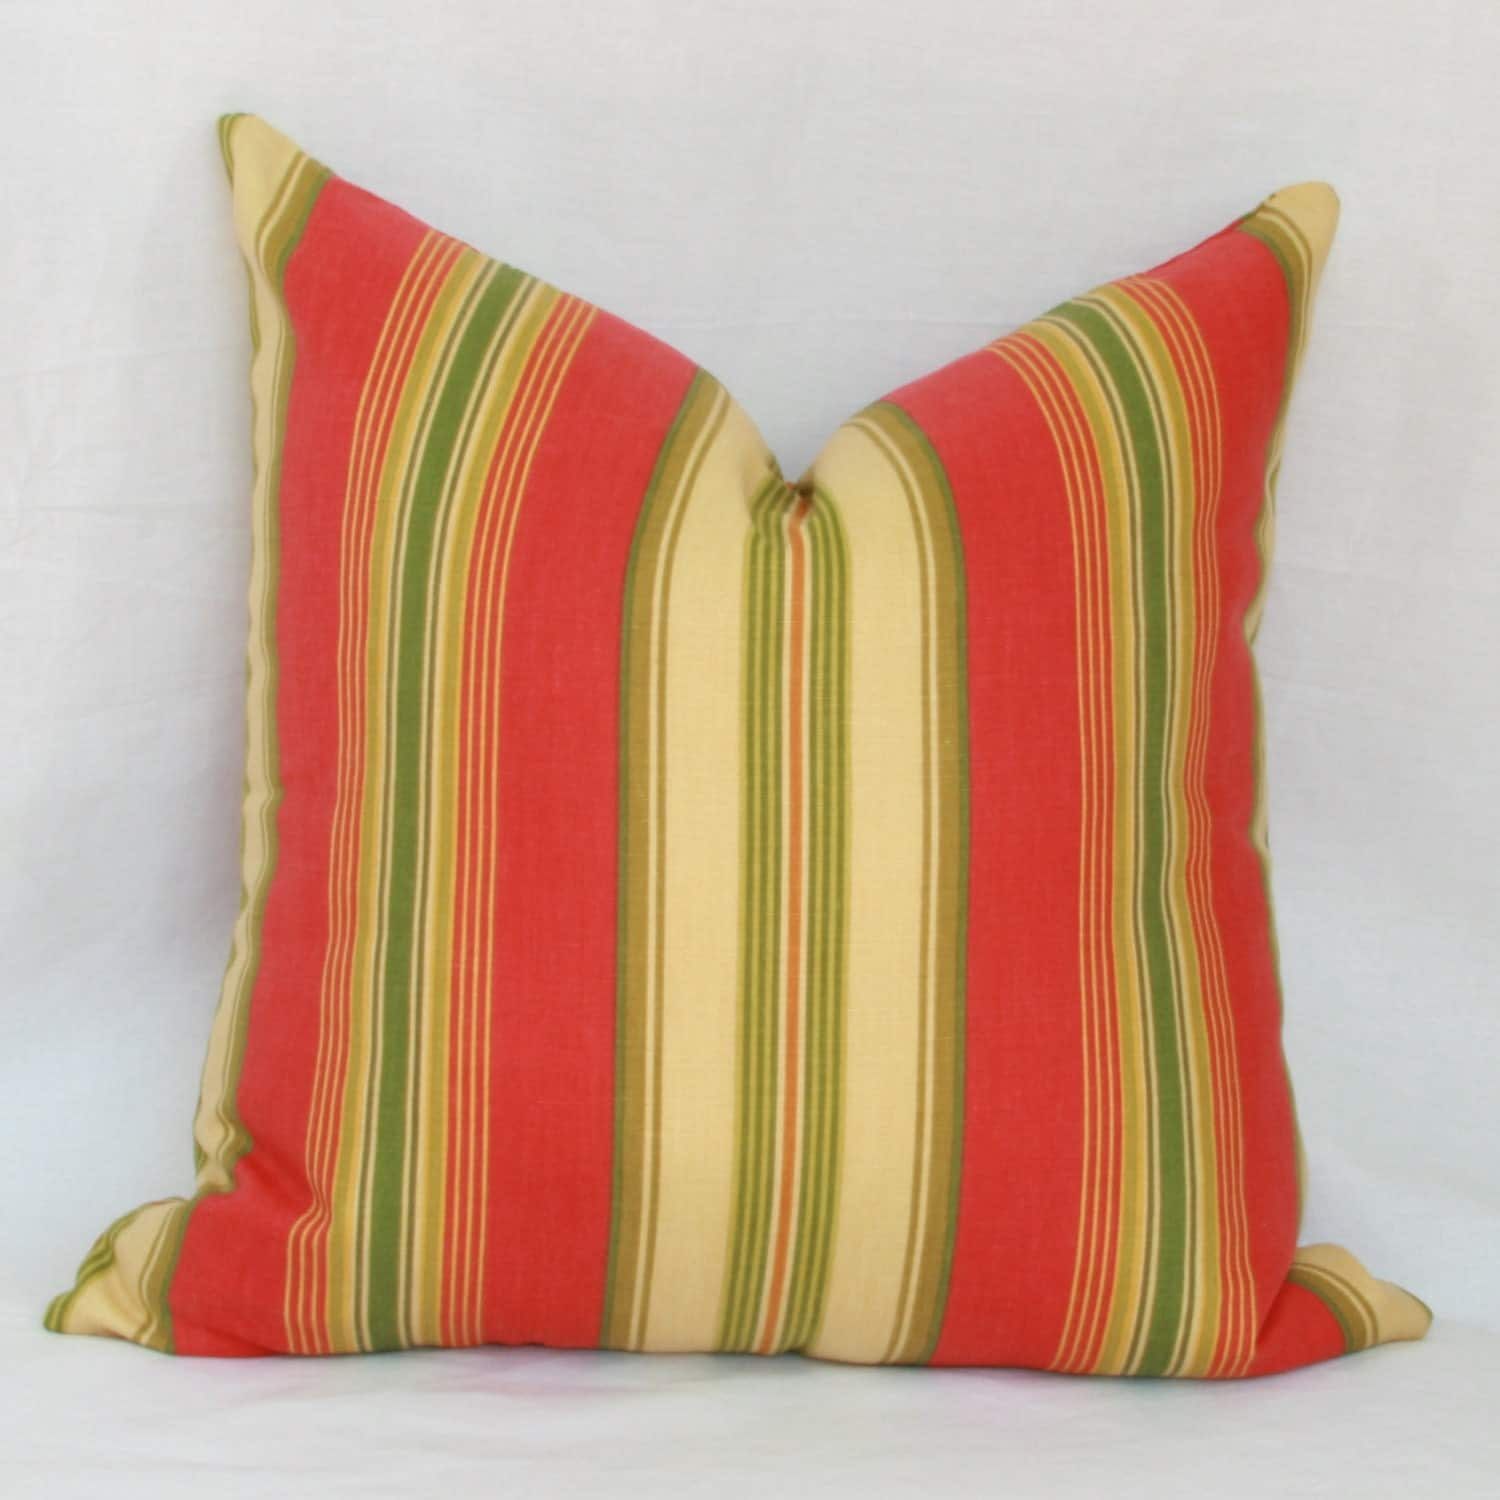 Orange gold & green striped decorative throw pillow cover.